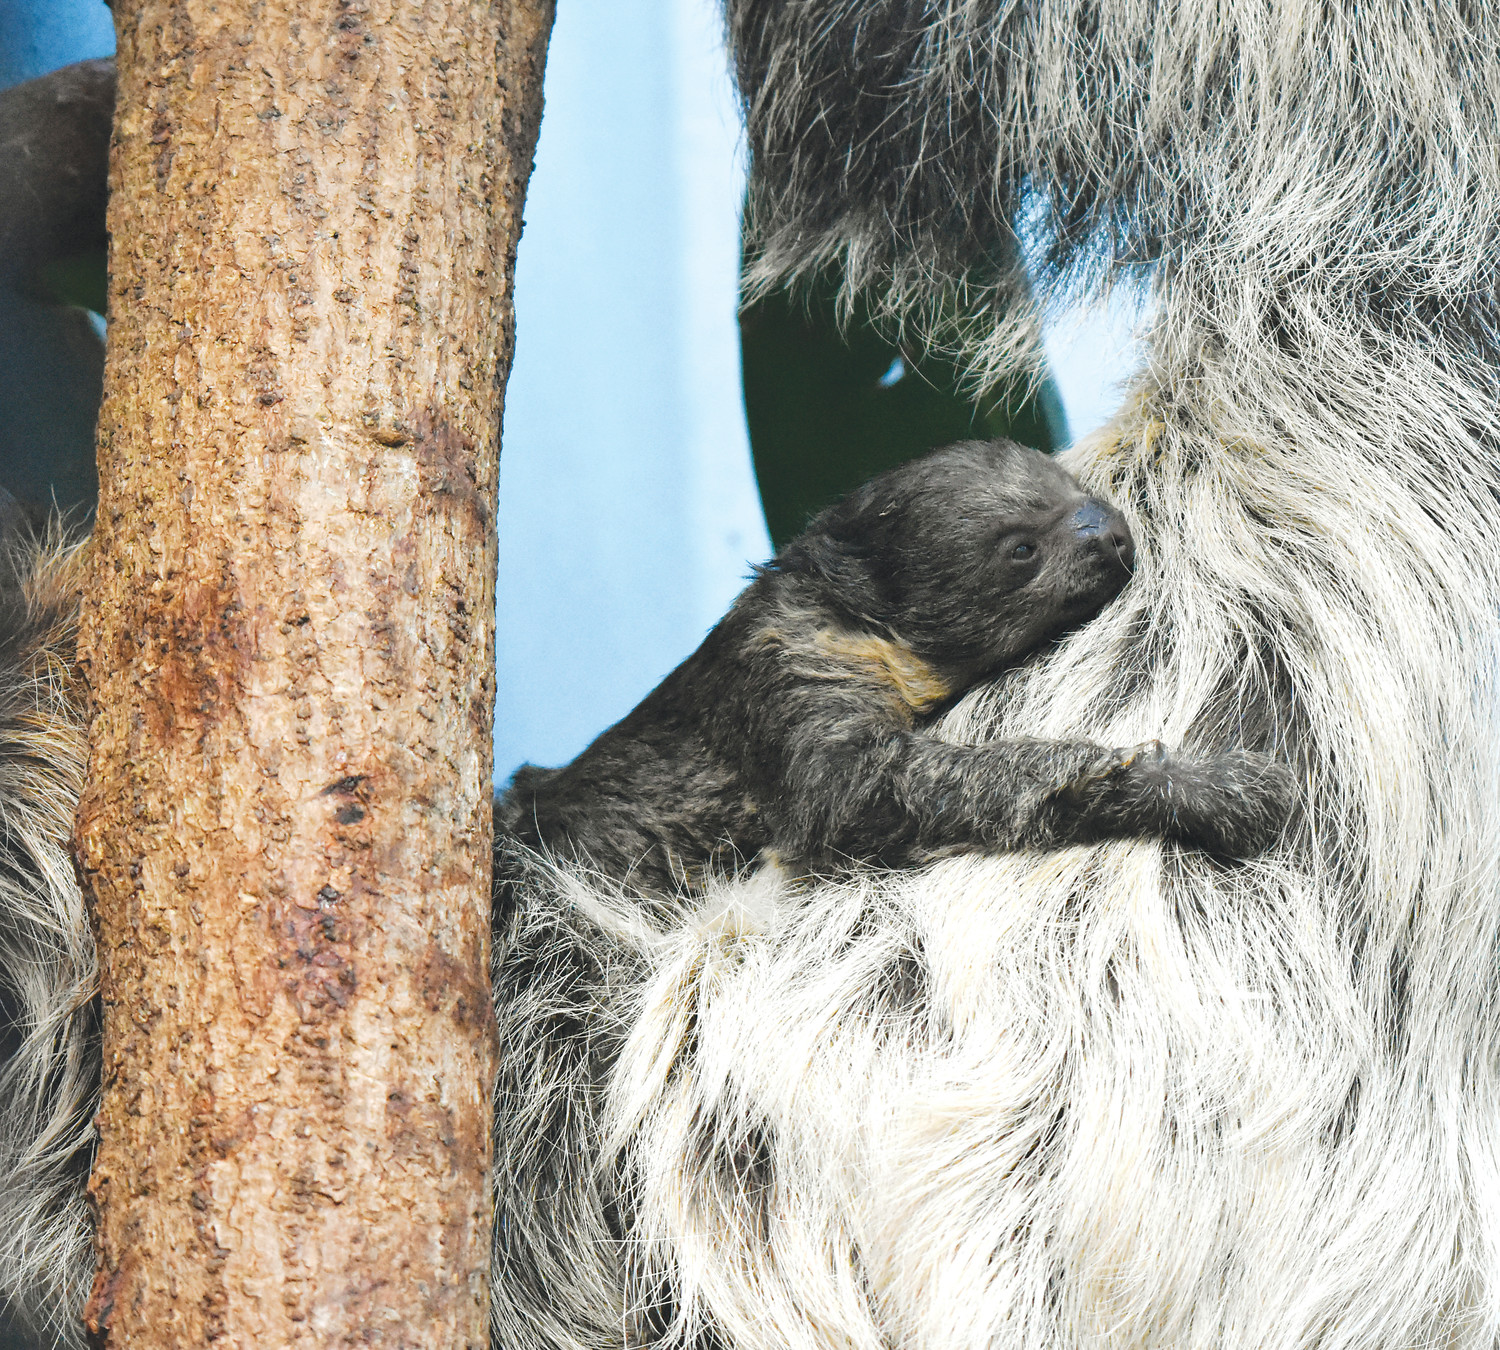 Zoo Celebrates Birth Of Linne's Two-toed Sloth